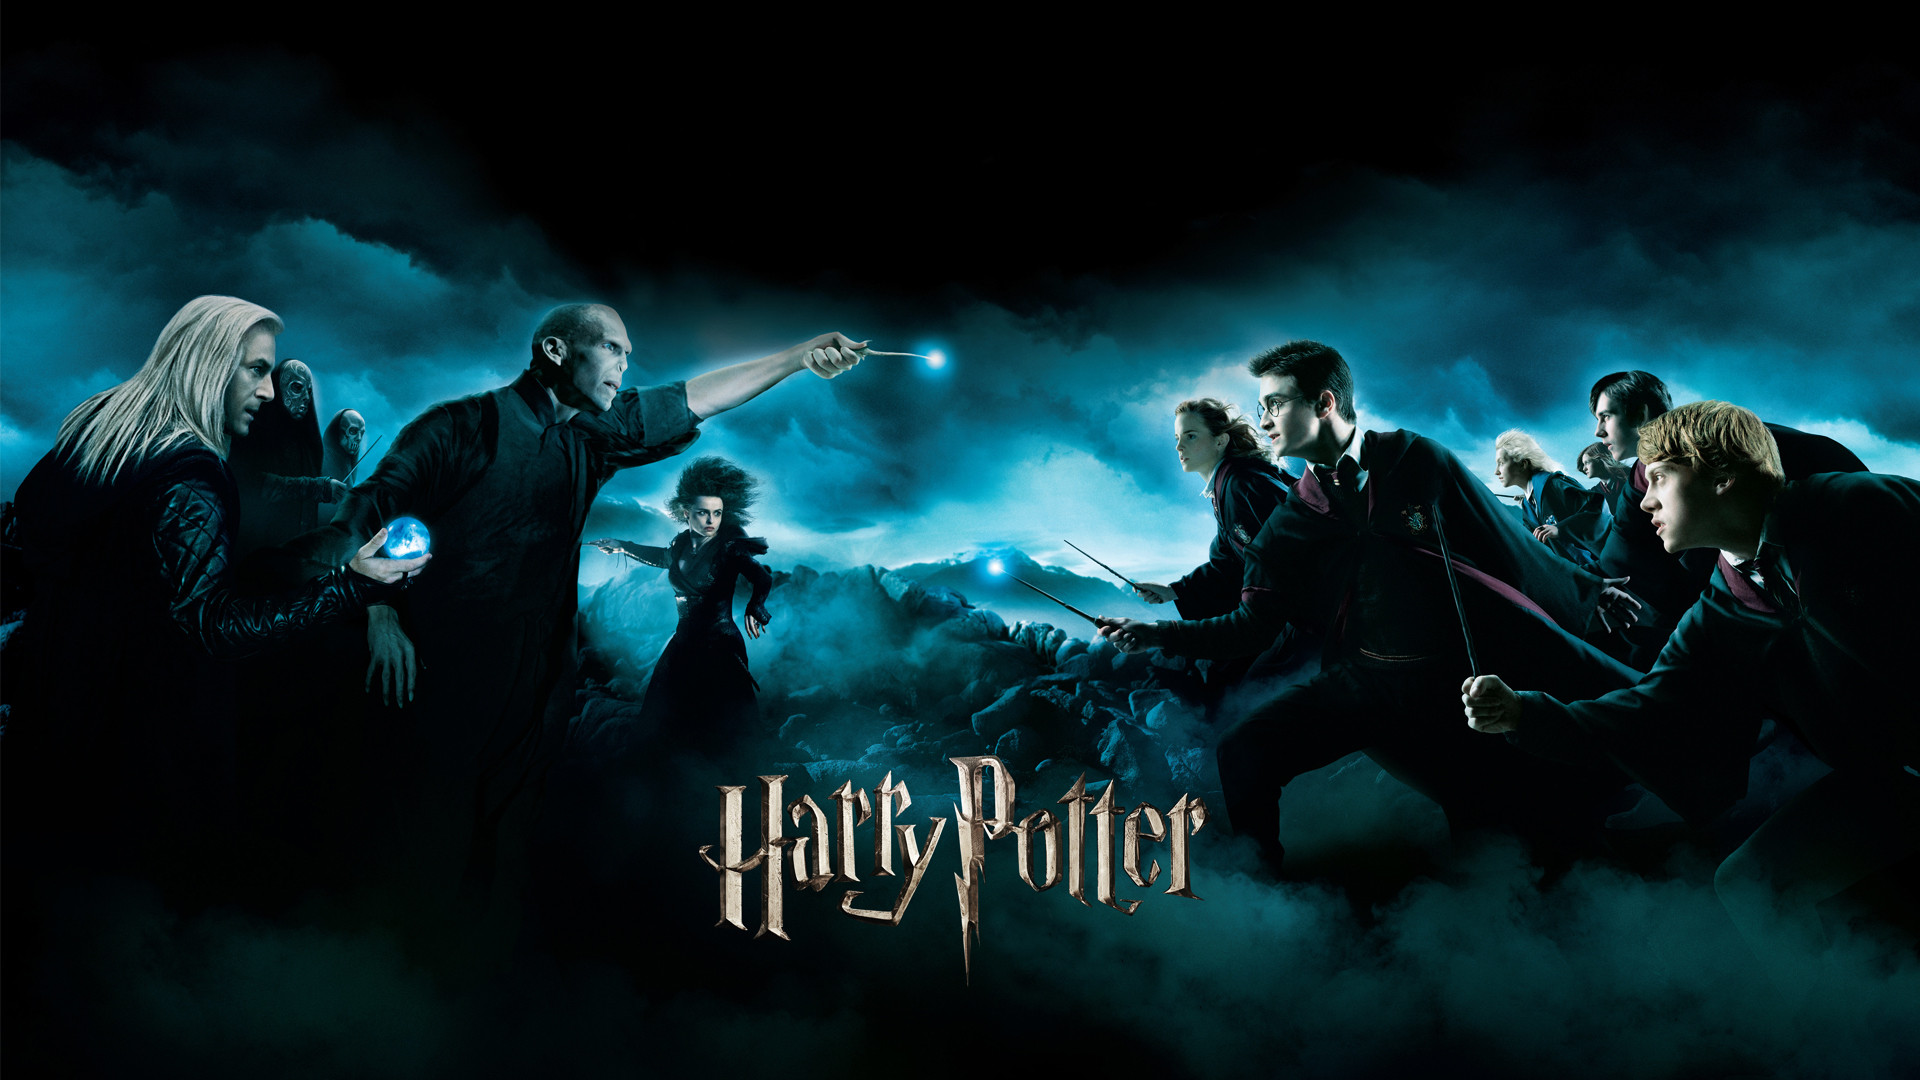 Beautiful Harry Potter Logo Wallpapers – iMovie